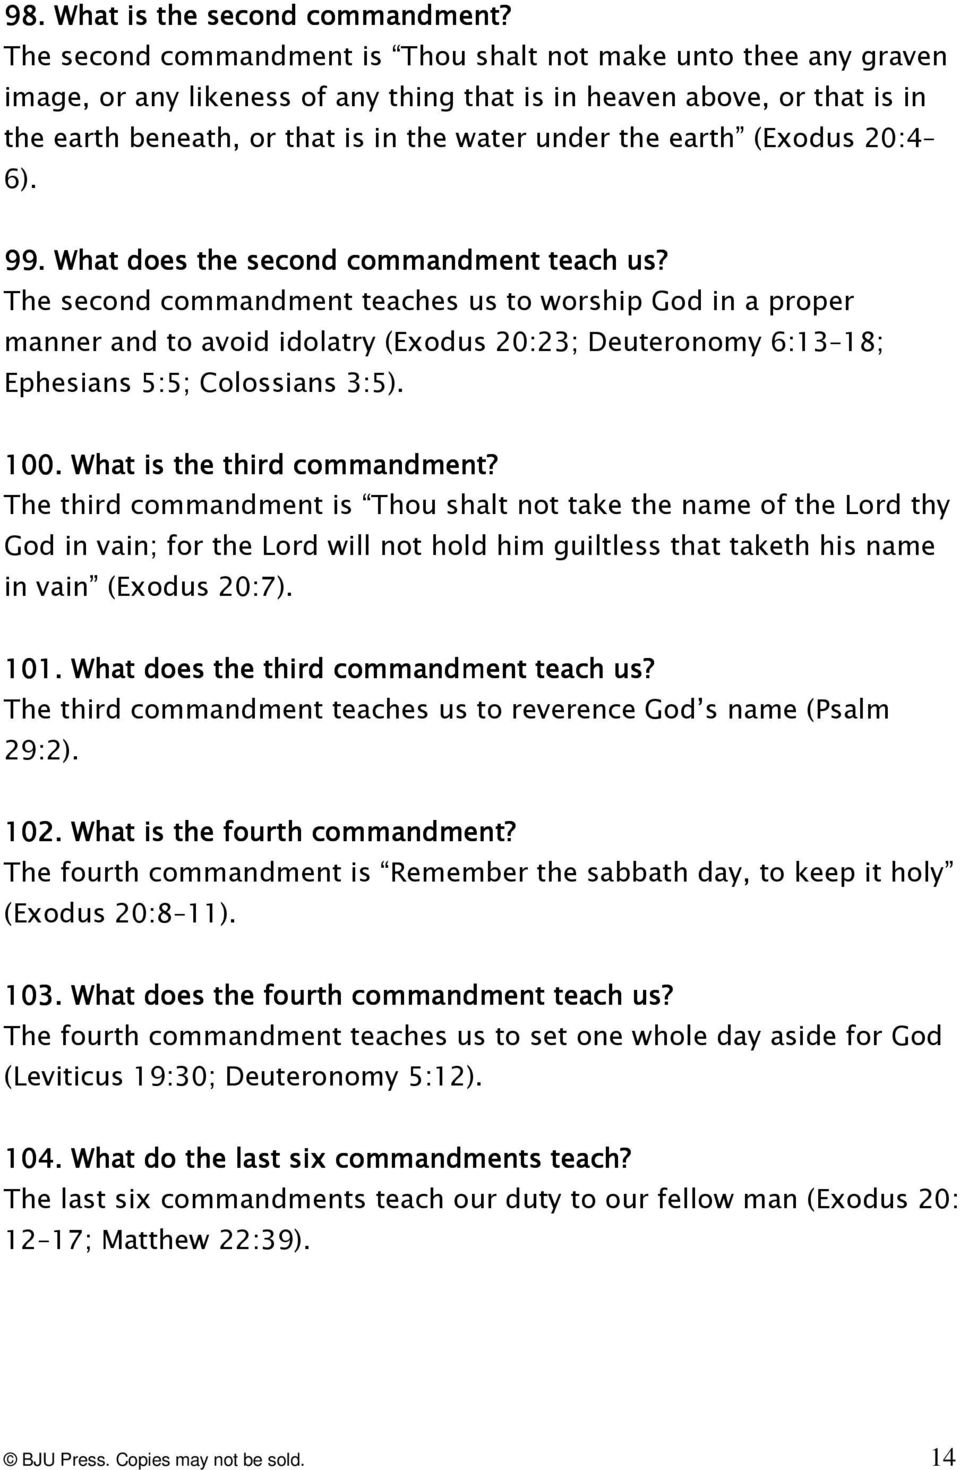 earth (Exodus 20:4 6). 99.. What does the second commandment teach us?